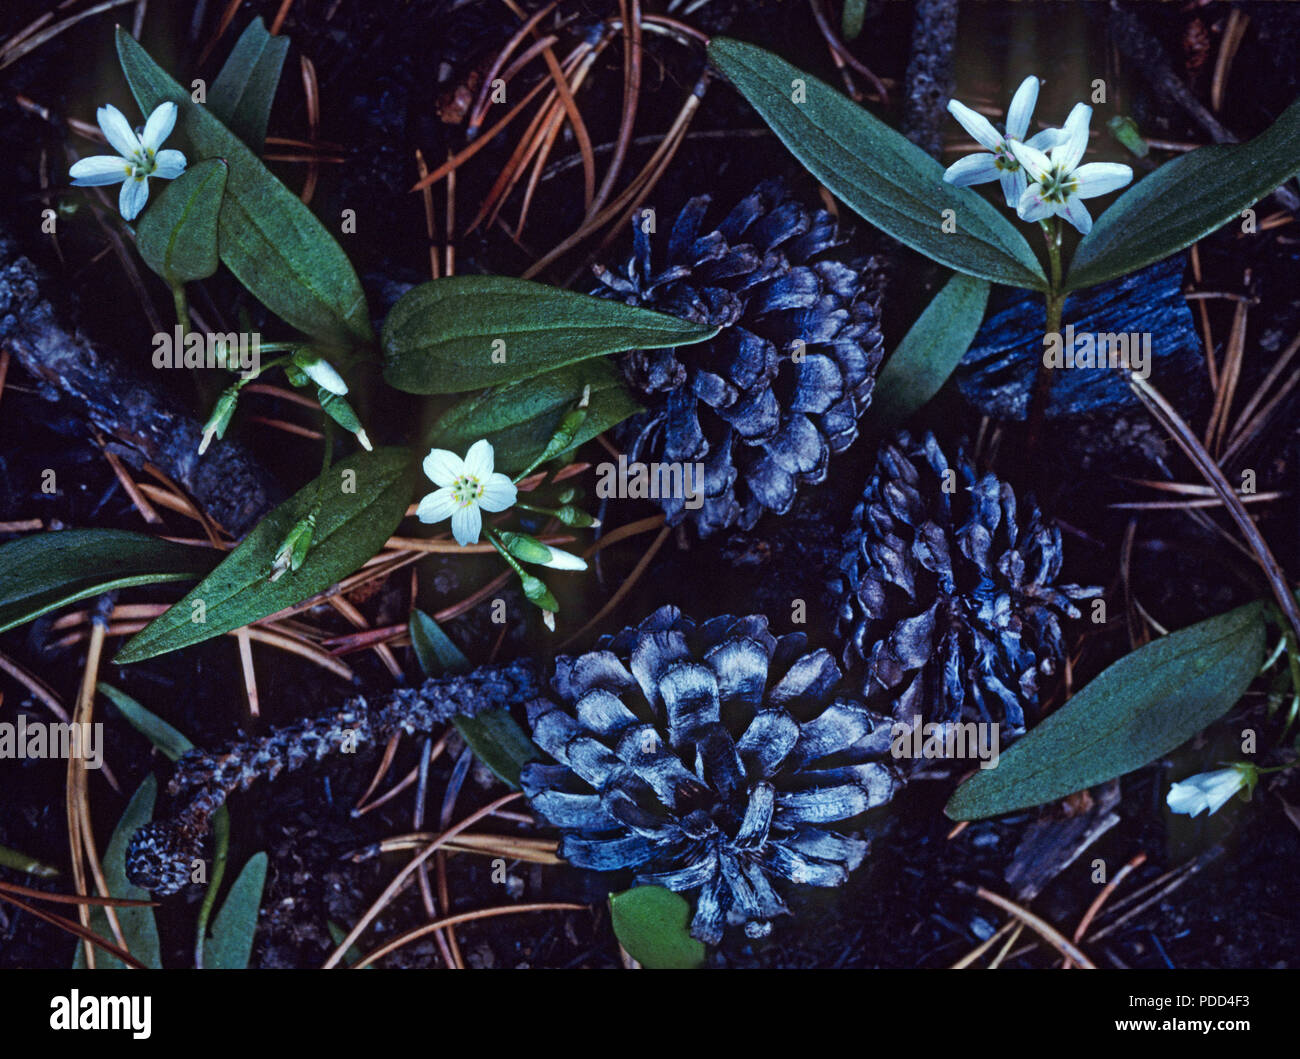 Fire succession, the year after a fire. Opened serotinous lodgepole pine cones and wildflowers on forest floor, Yellowstone National Park. Renewal - Stock Image